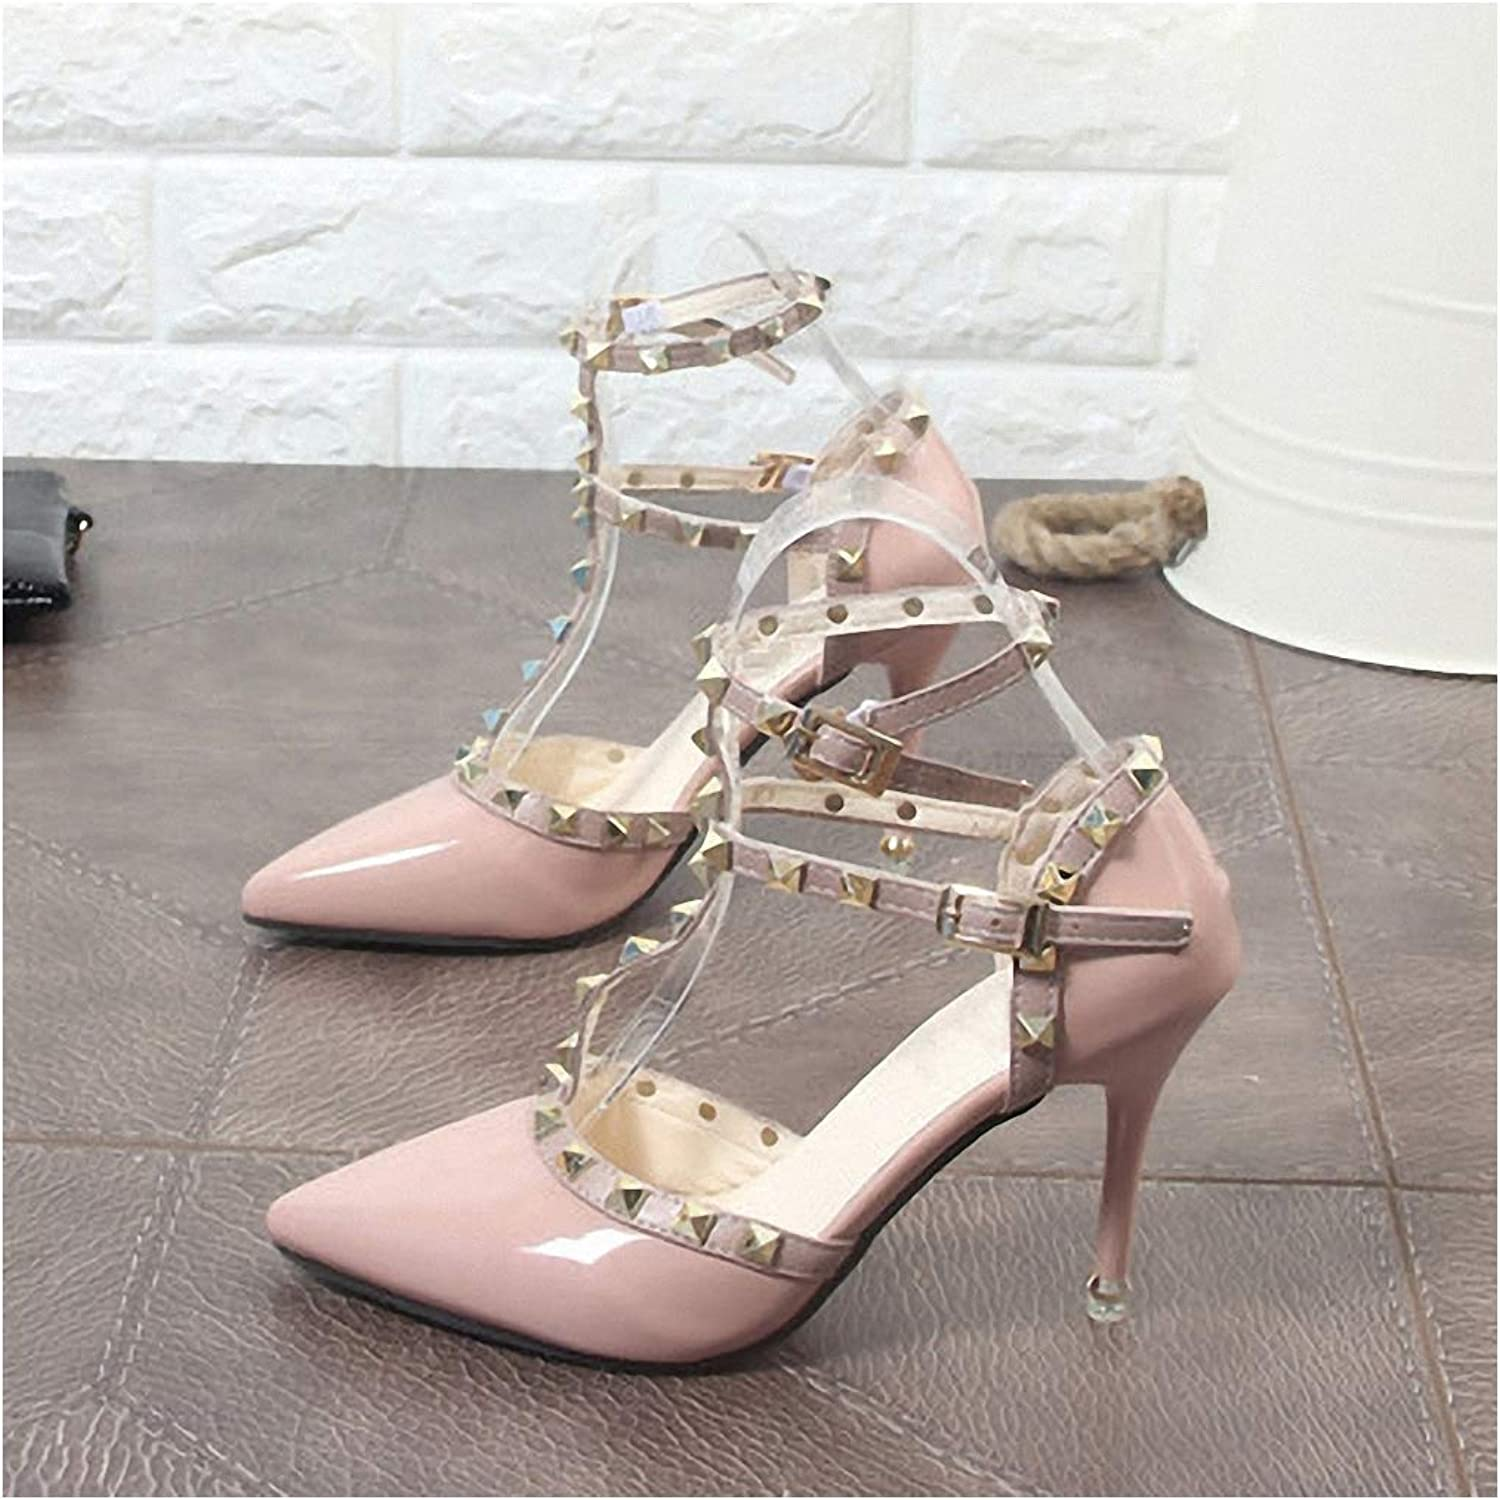 Womens High-Heeled Pumps shoes Sexy Hasp Heels Female Rivet High Heel Leather Pumps Woman 9cm Needle Heel shoes in Hollow Point Ventilation Rivet shoes